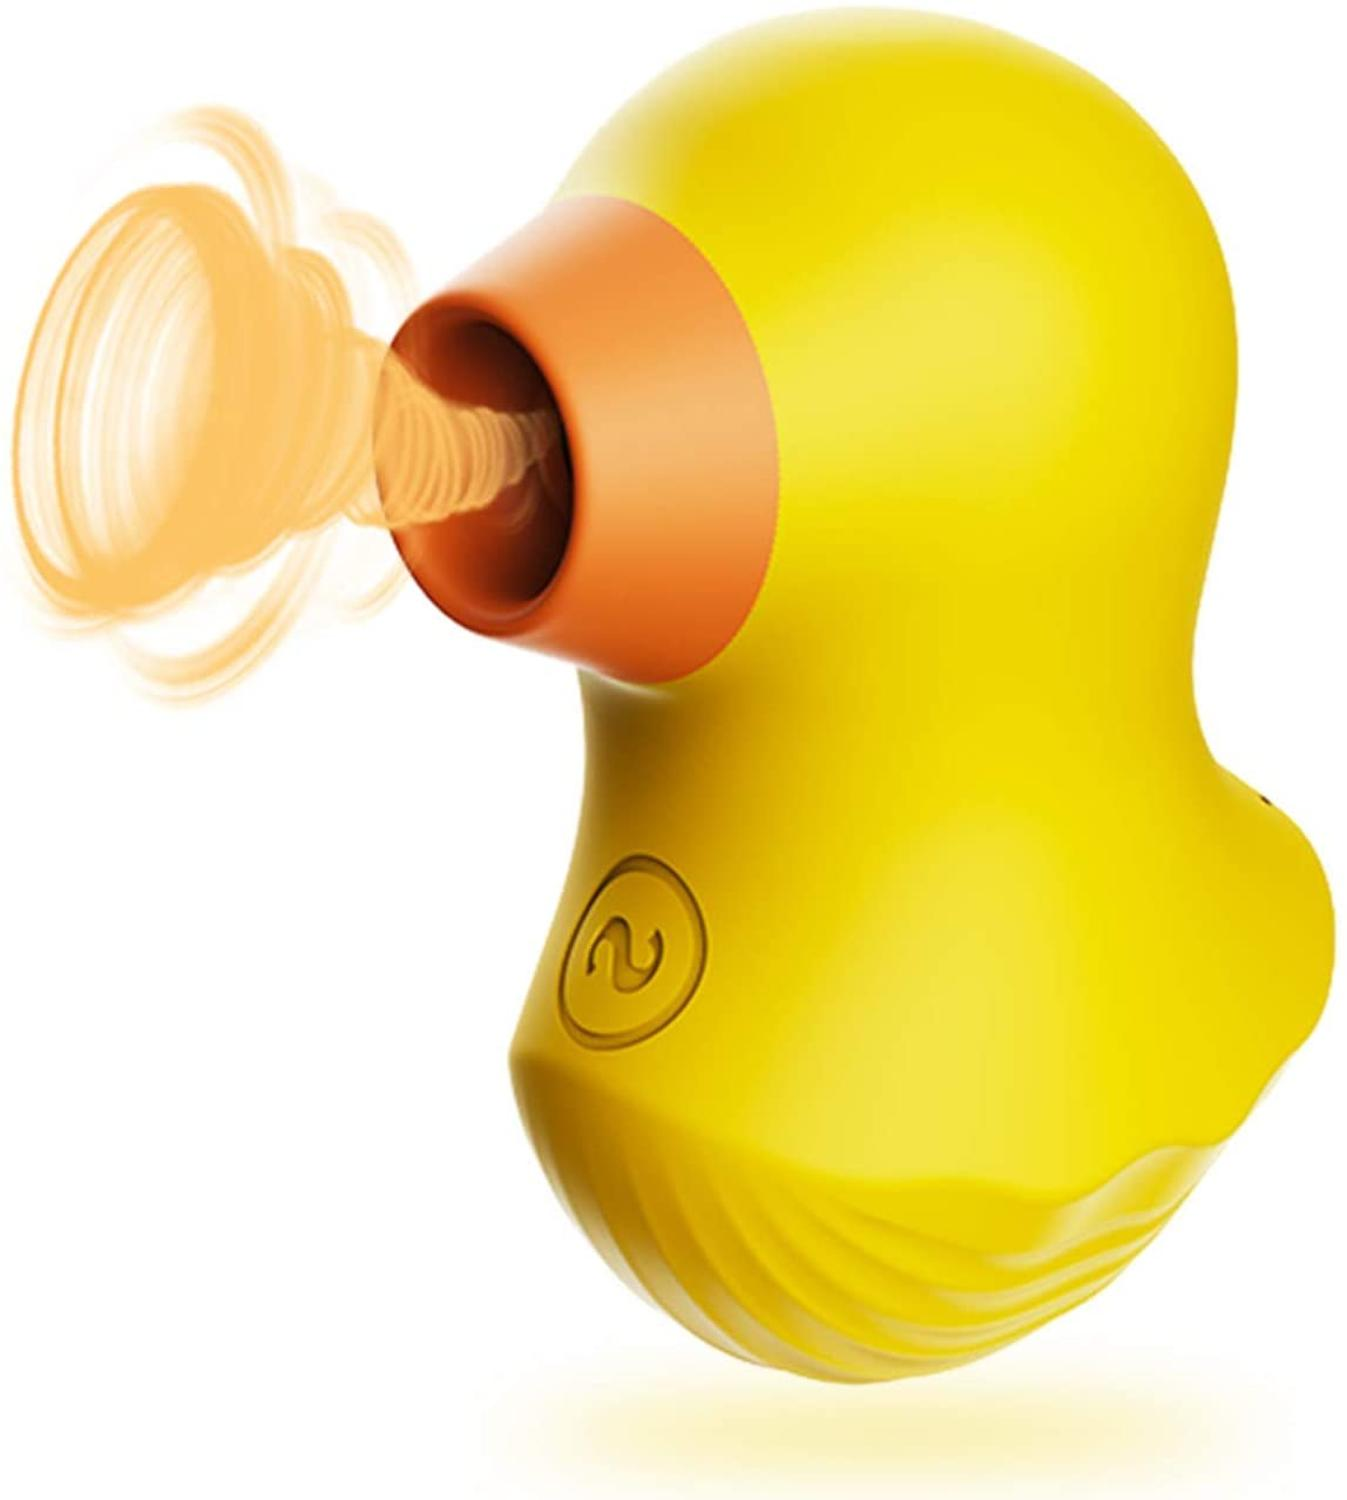 Mr Duckie Clitoral Sucking Vibrator For Clit Nipple Stimulation With 7 Suction Levels, Souvenir For Lovers